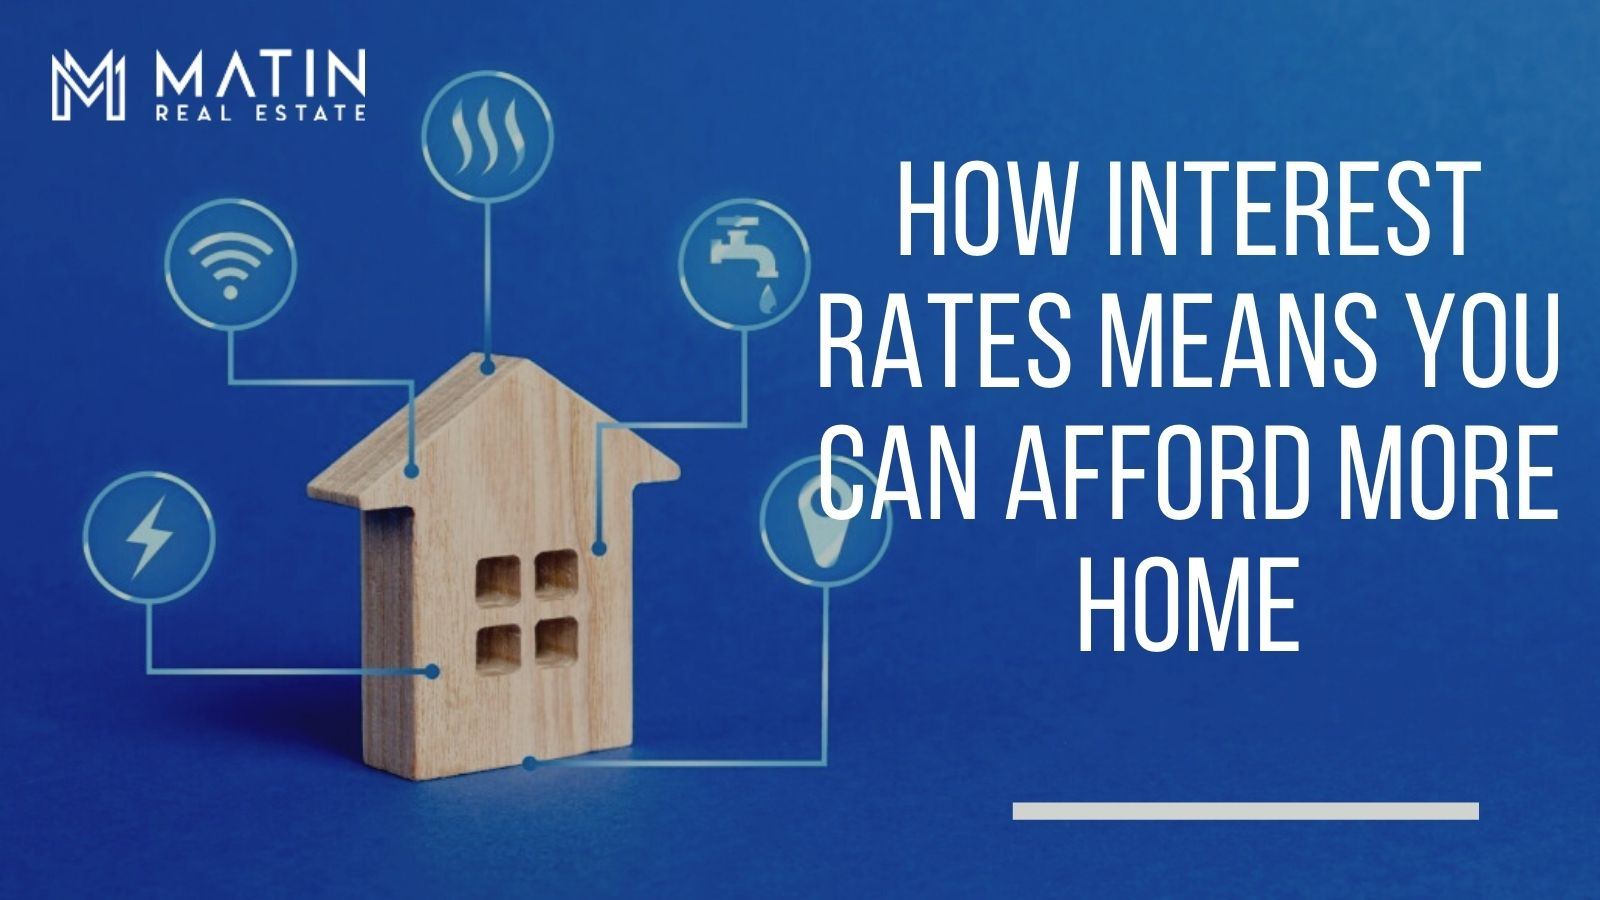 how interest rates affect home buying affordability